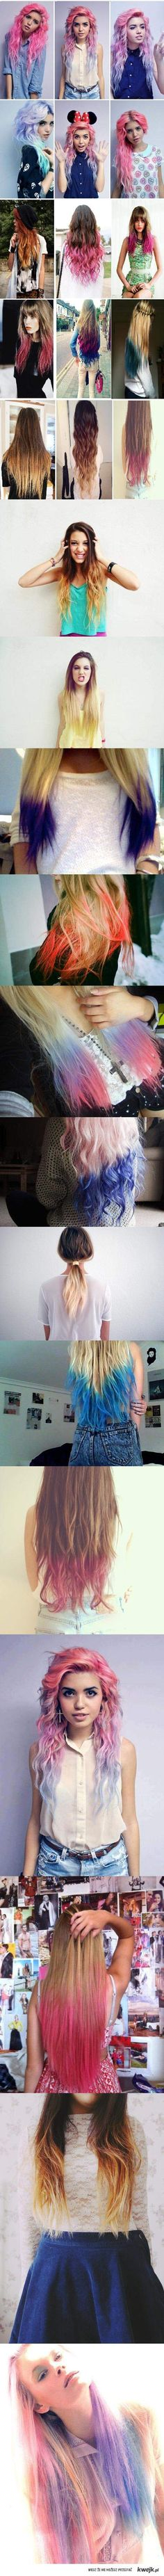 best directions hair dye images on pinterest hair coloring